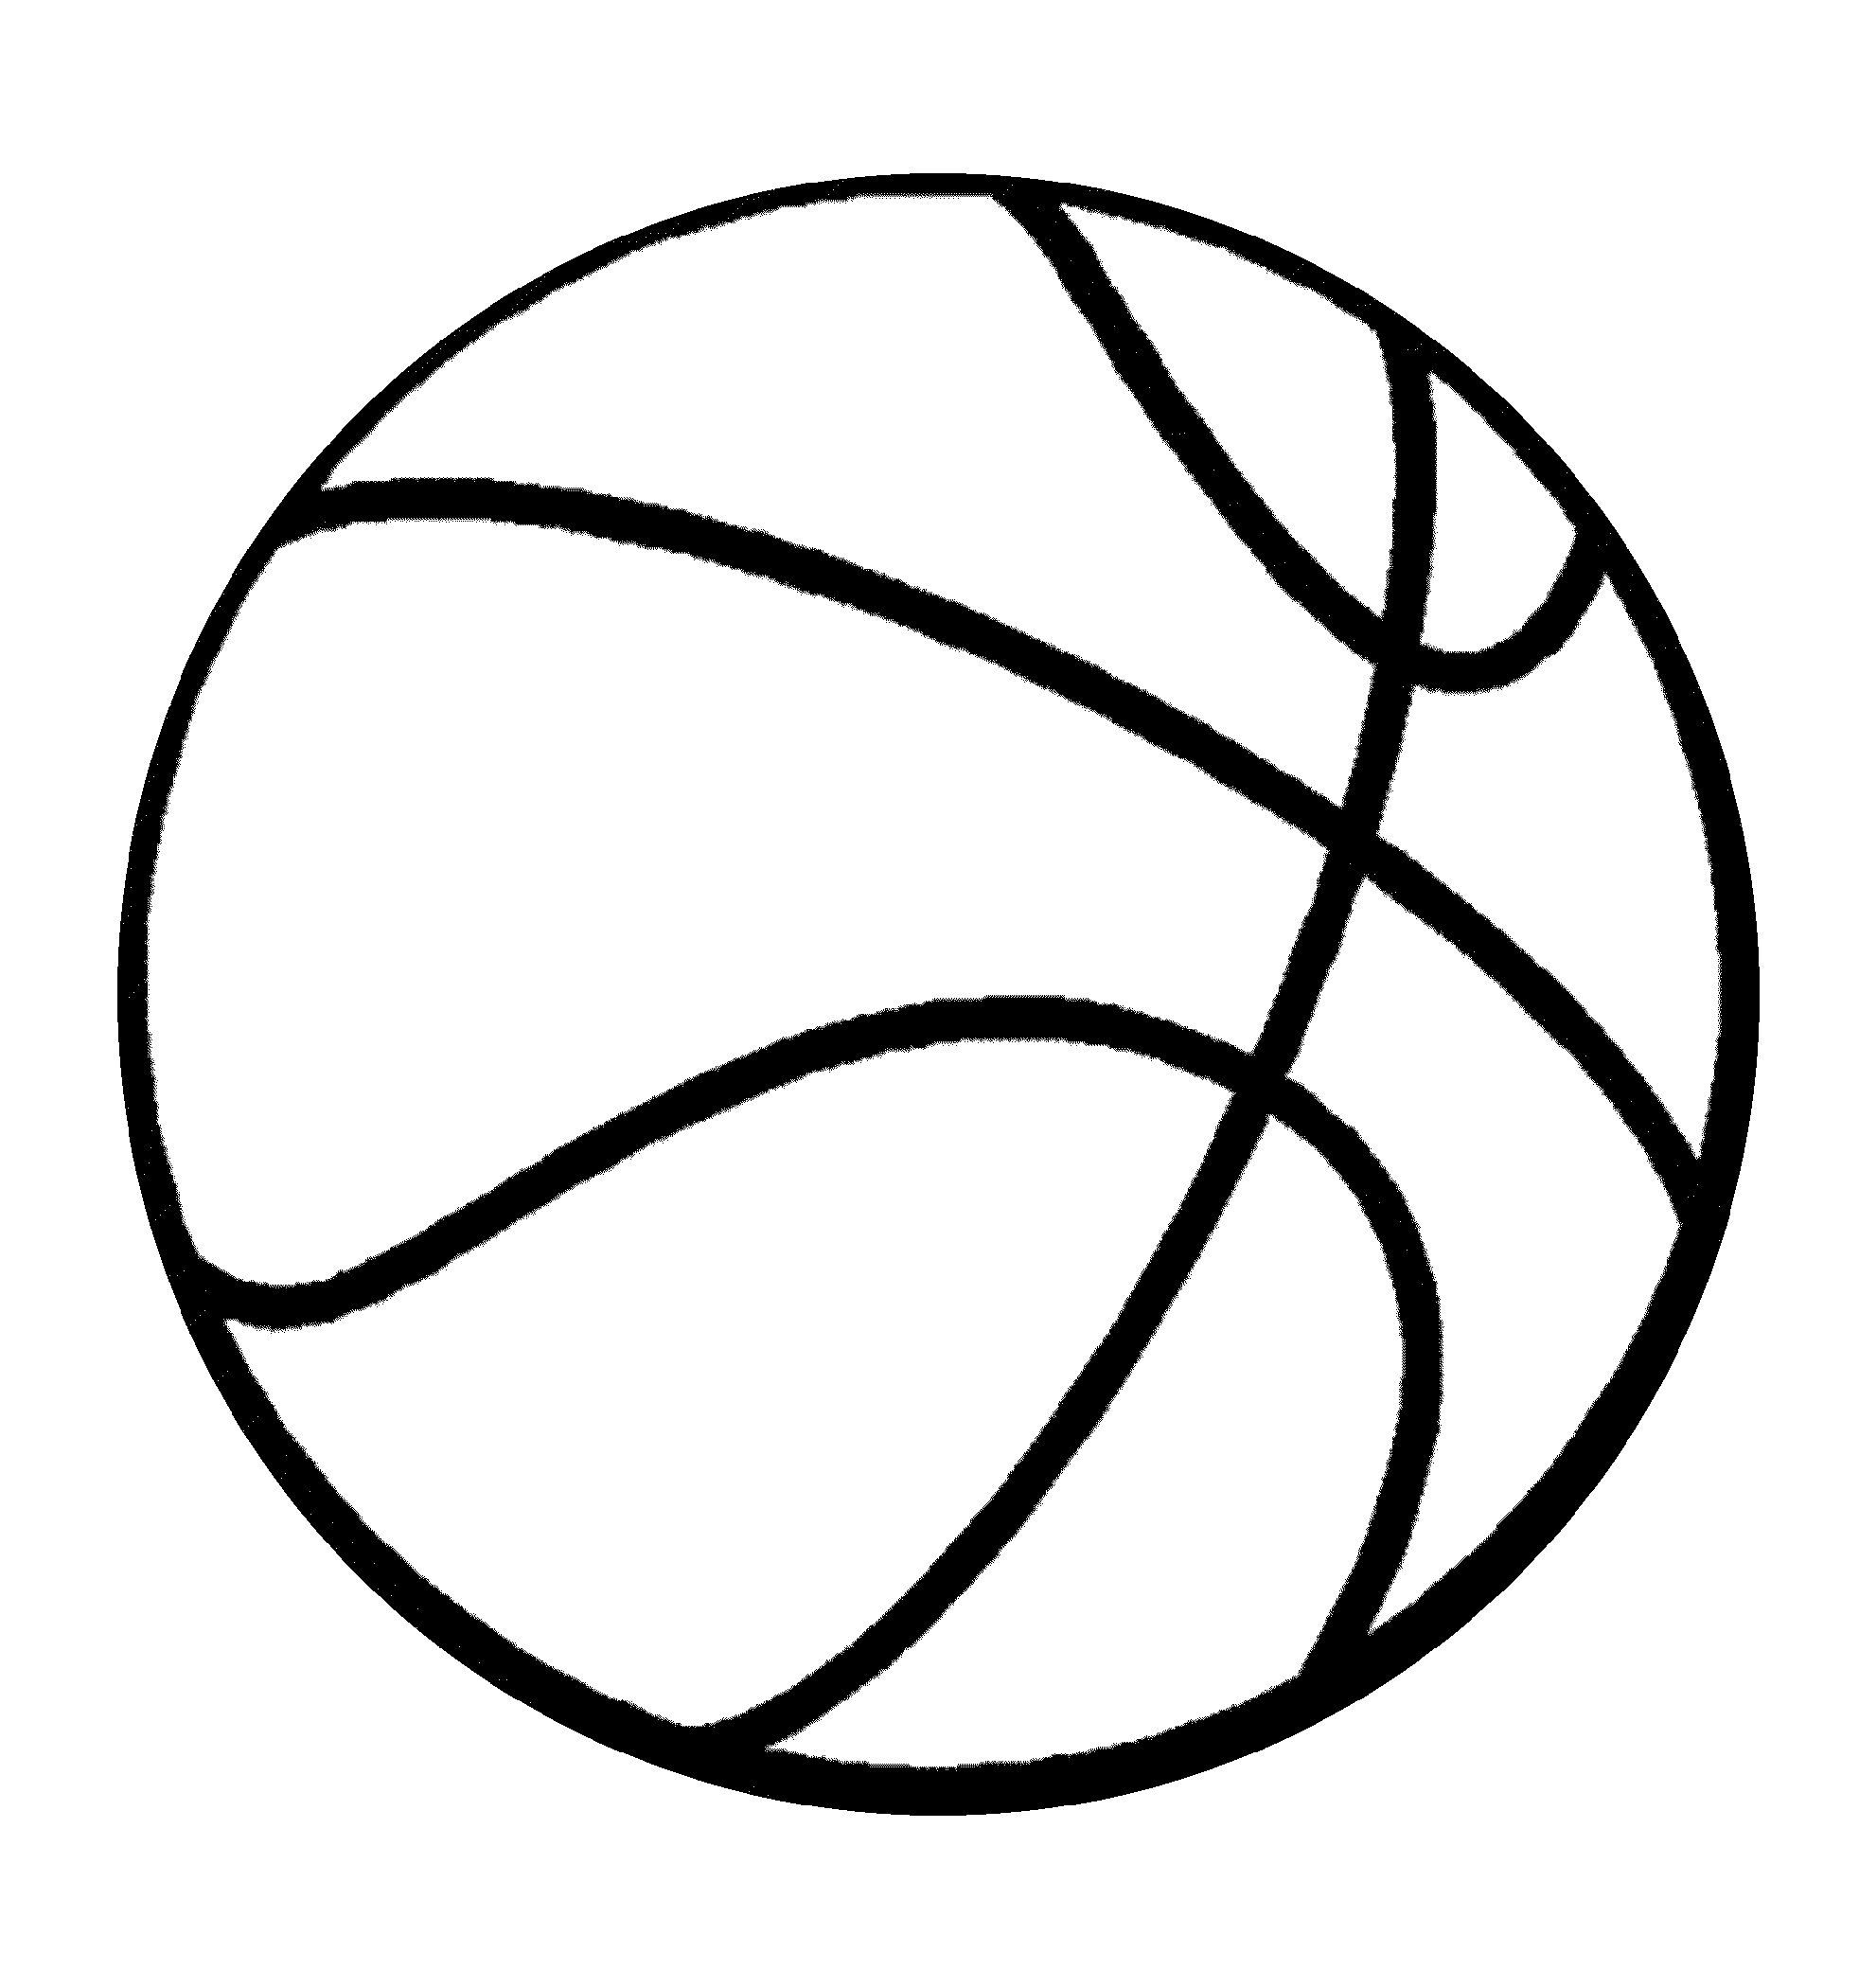 coloring pages of basketball easy basketball mandala easy mandalas for kids 100 pages coloring basketball of